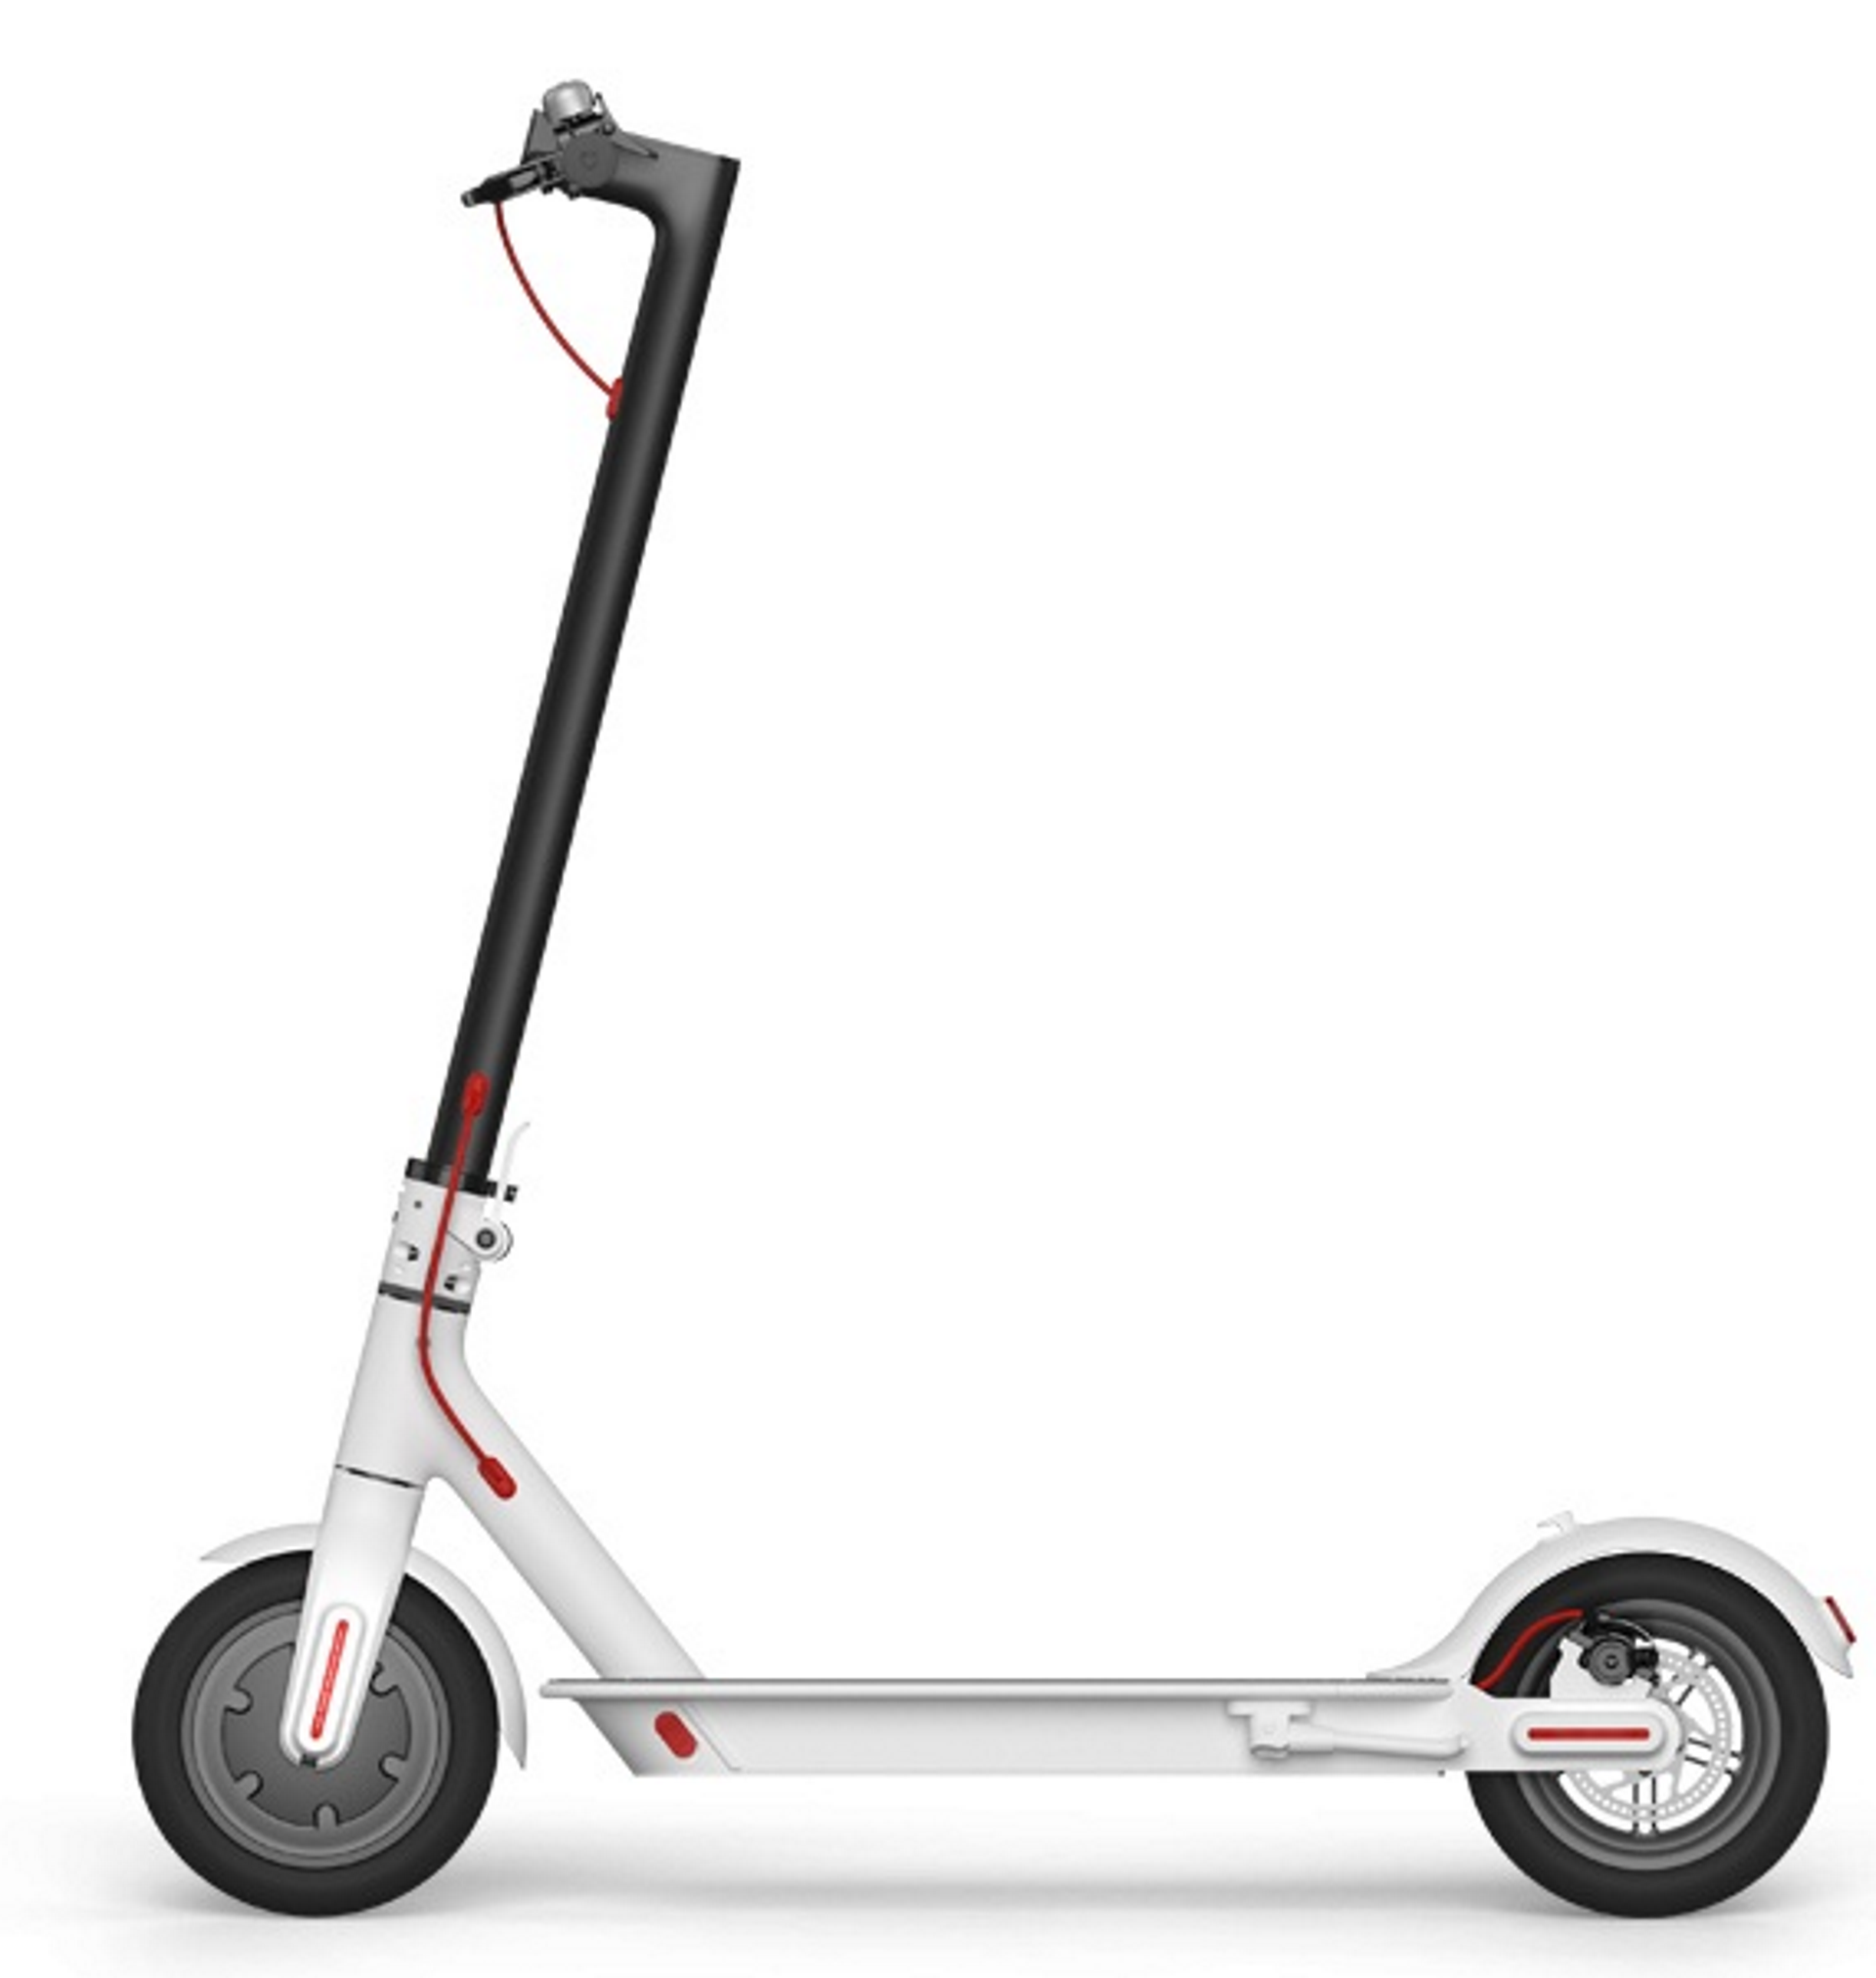 Xiaomi Mi Electronic Scooter White Folding Ninebot Mini Self Balancing Black Aluminum Alloy Max Speed 25km H Battery Capacity35km In A Single Charge Weight 125kg